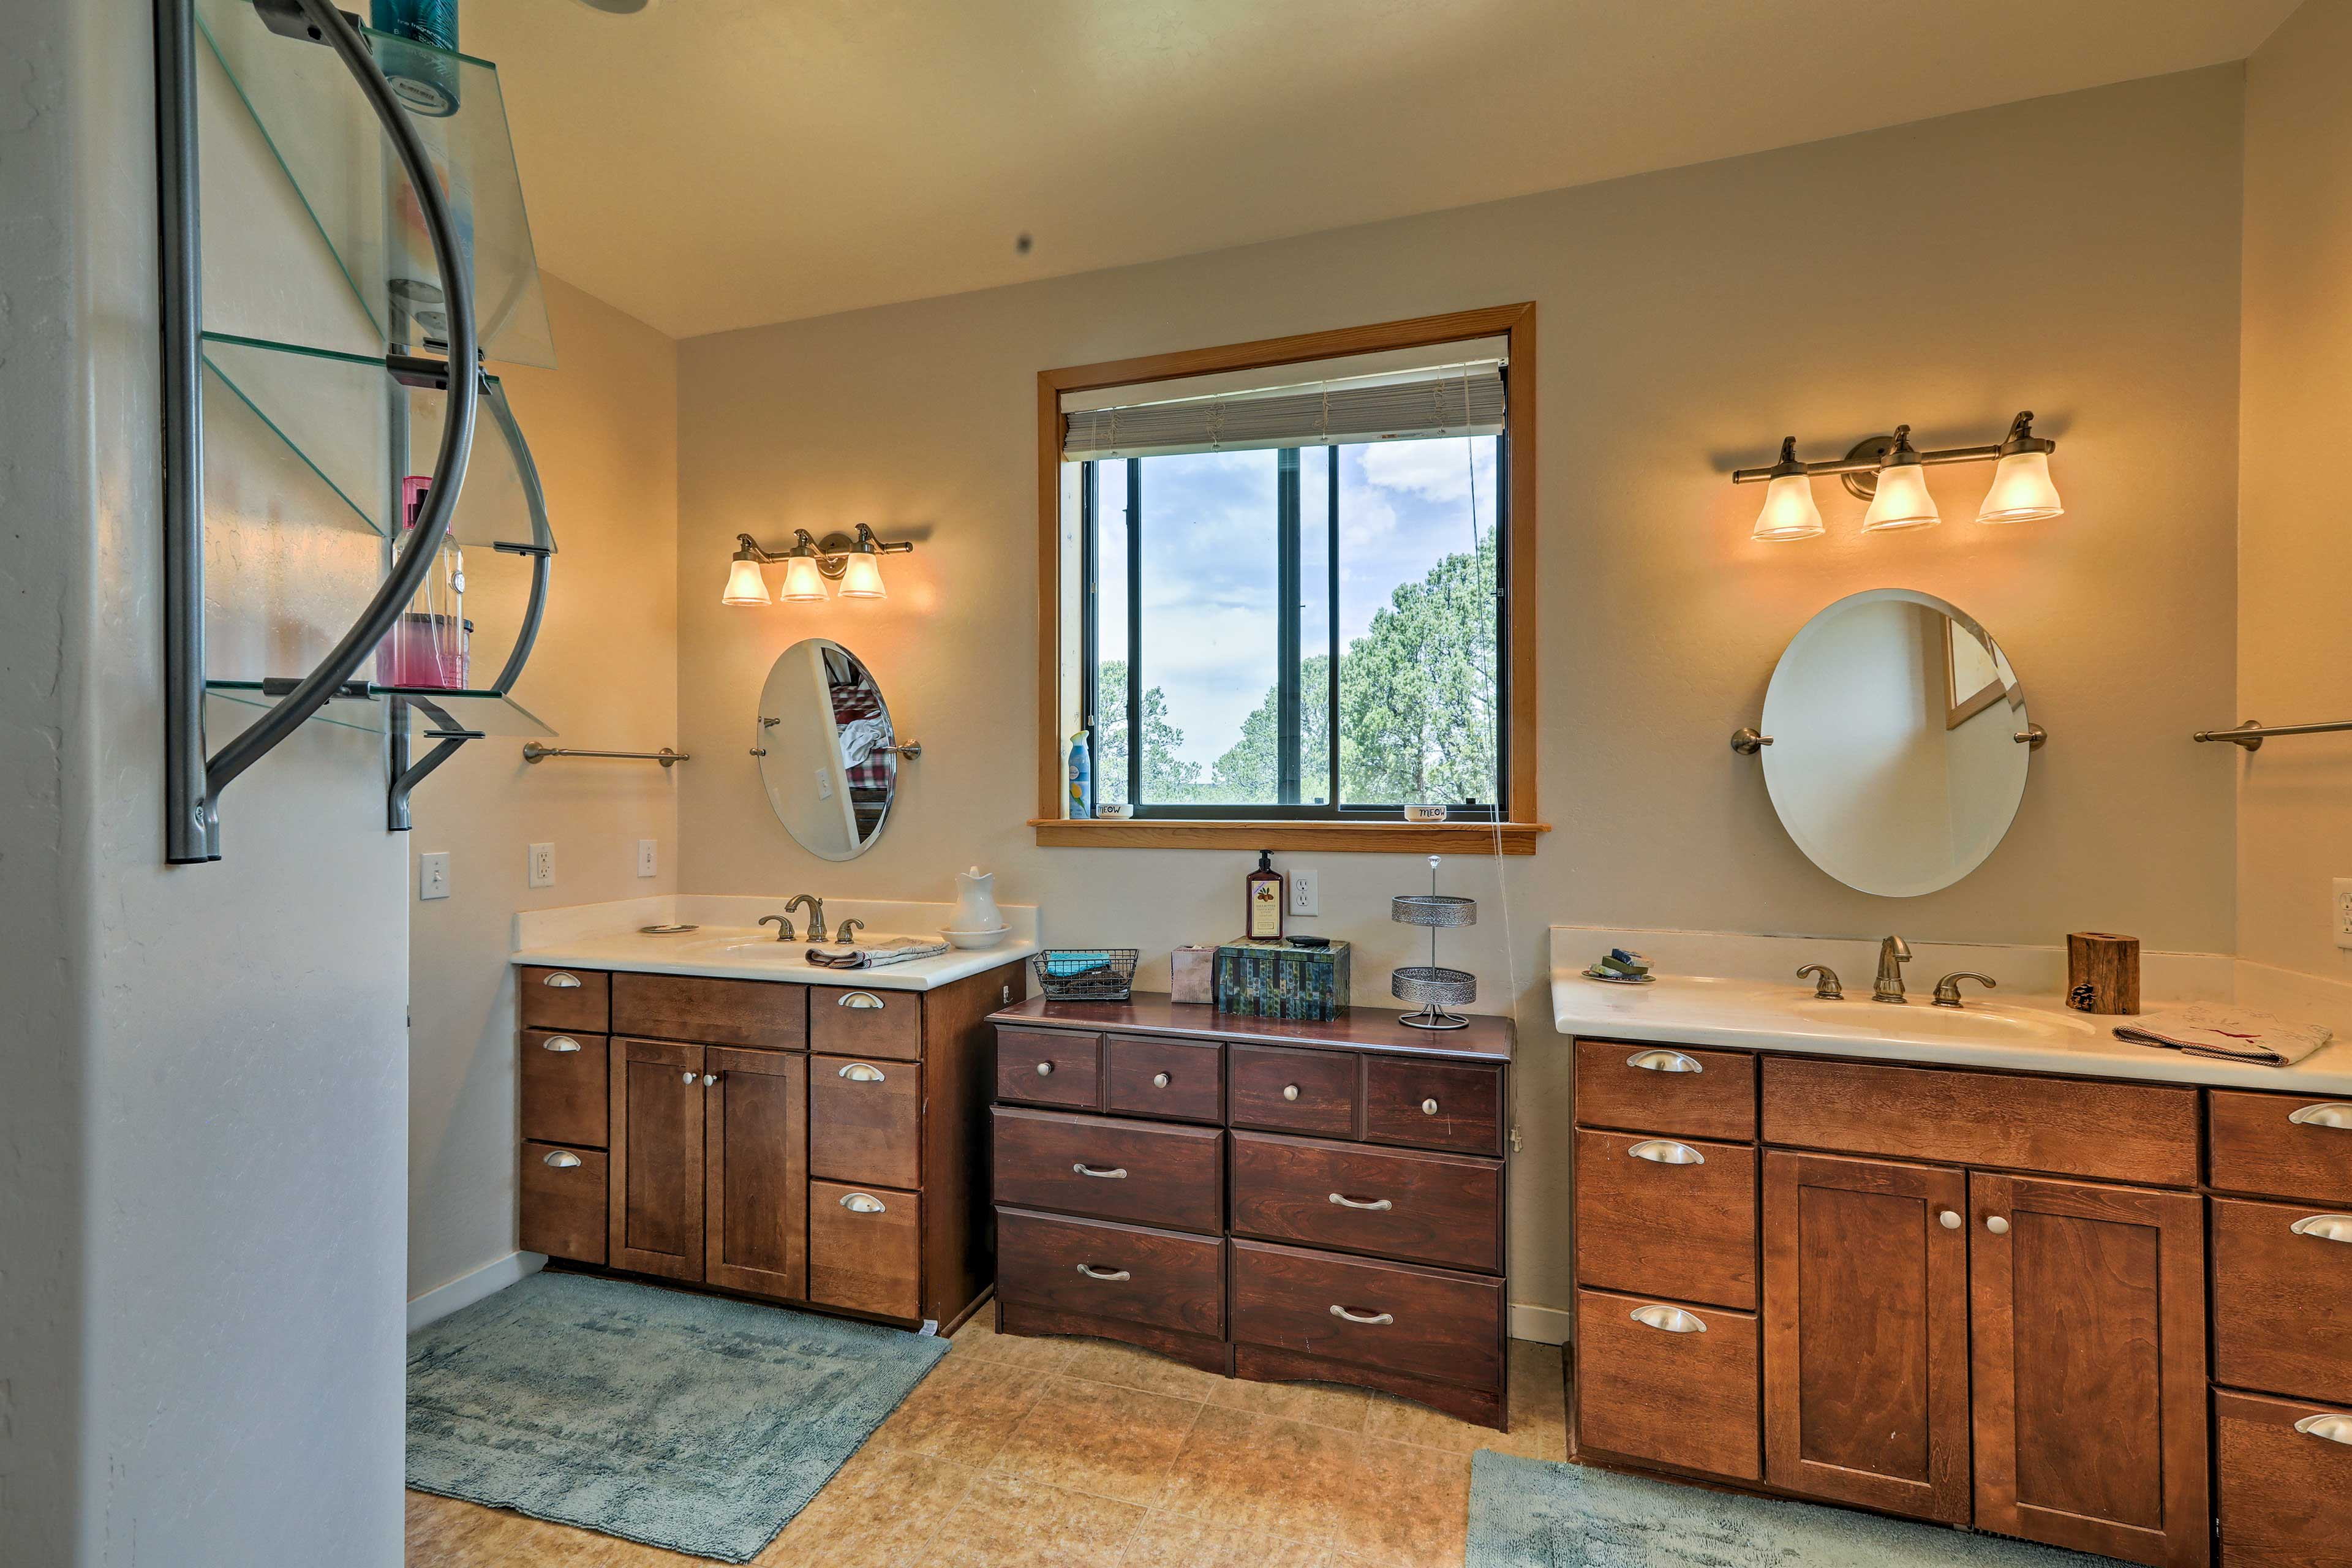 The Jack-and-Jill sinks are a lovely touch in the en-suite bathroom.